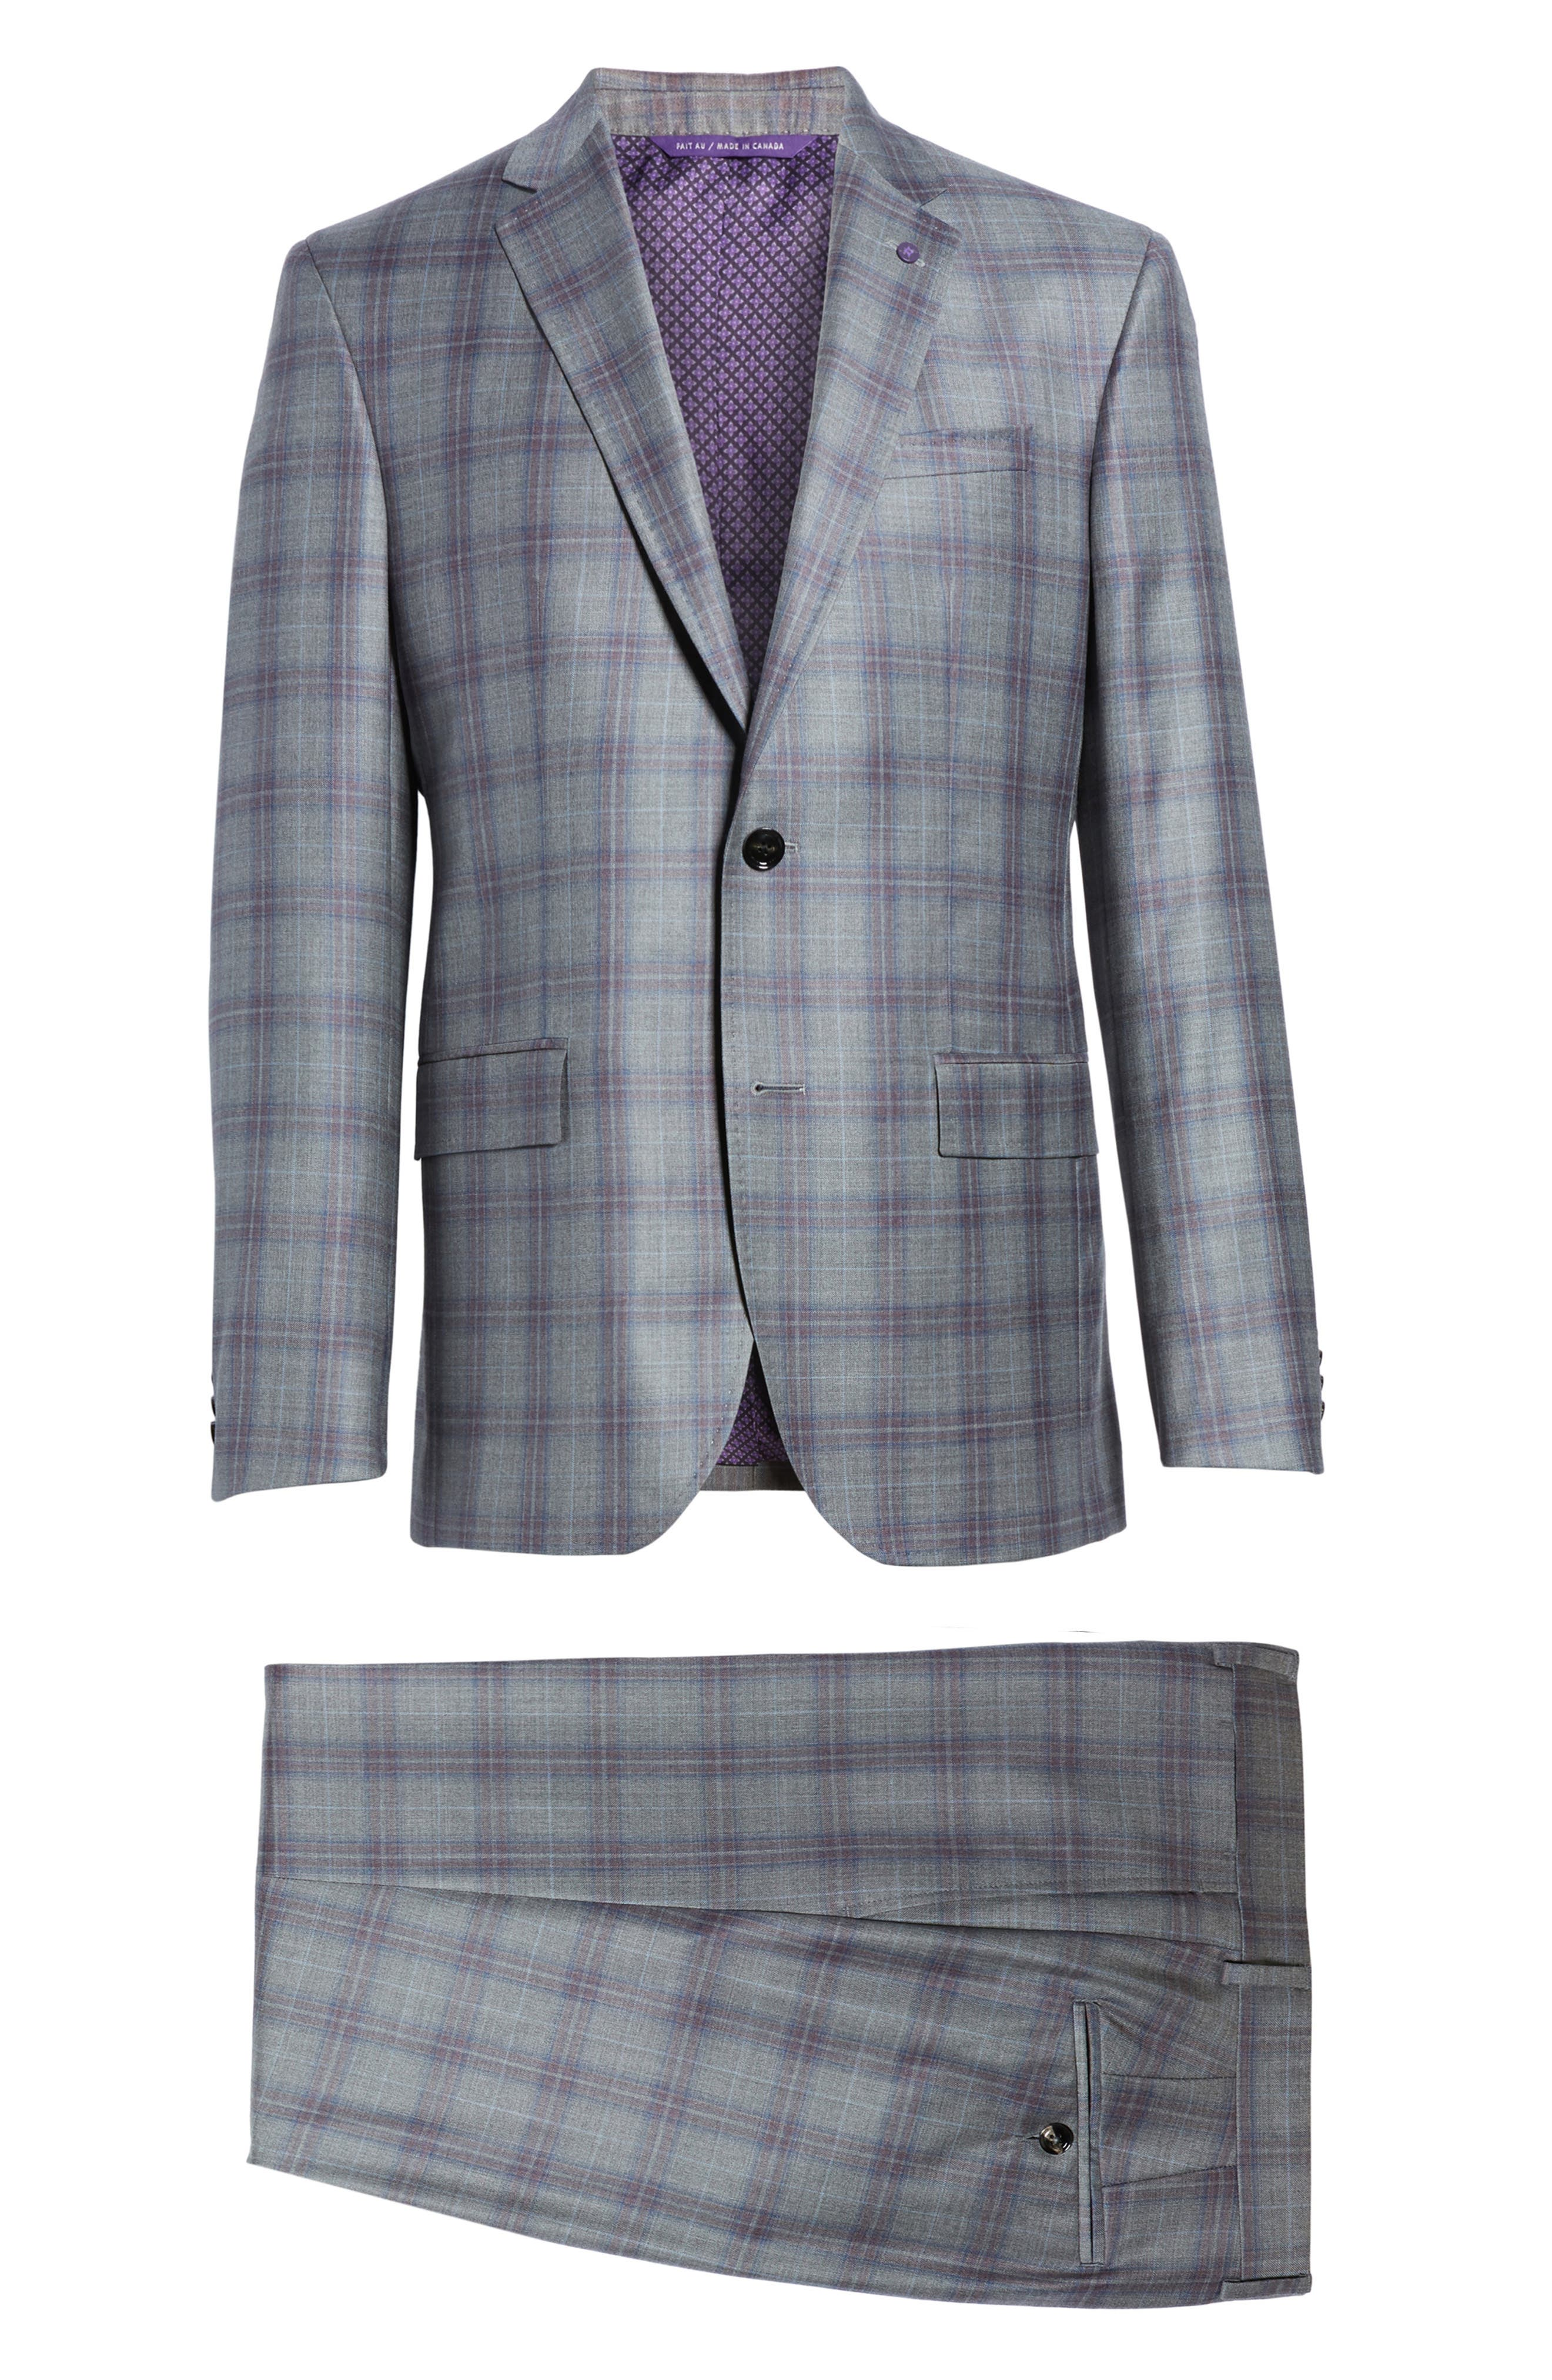 Jay Trim Fit Plaid Wool Suit,                             Alternate thumbnail 8, color,                             020